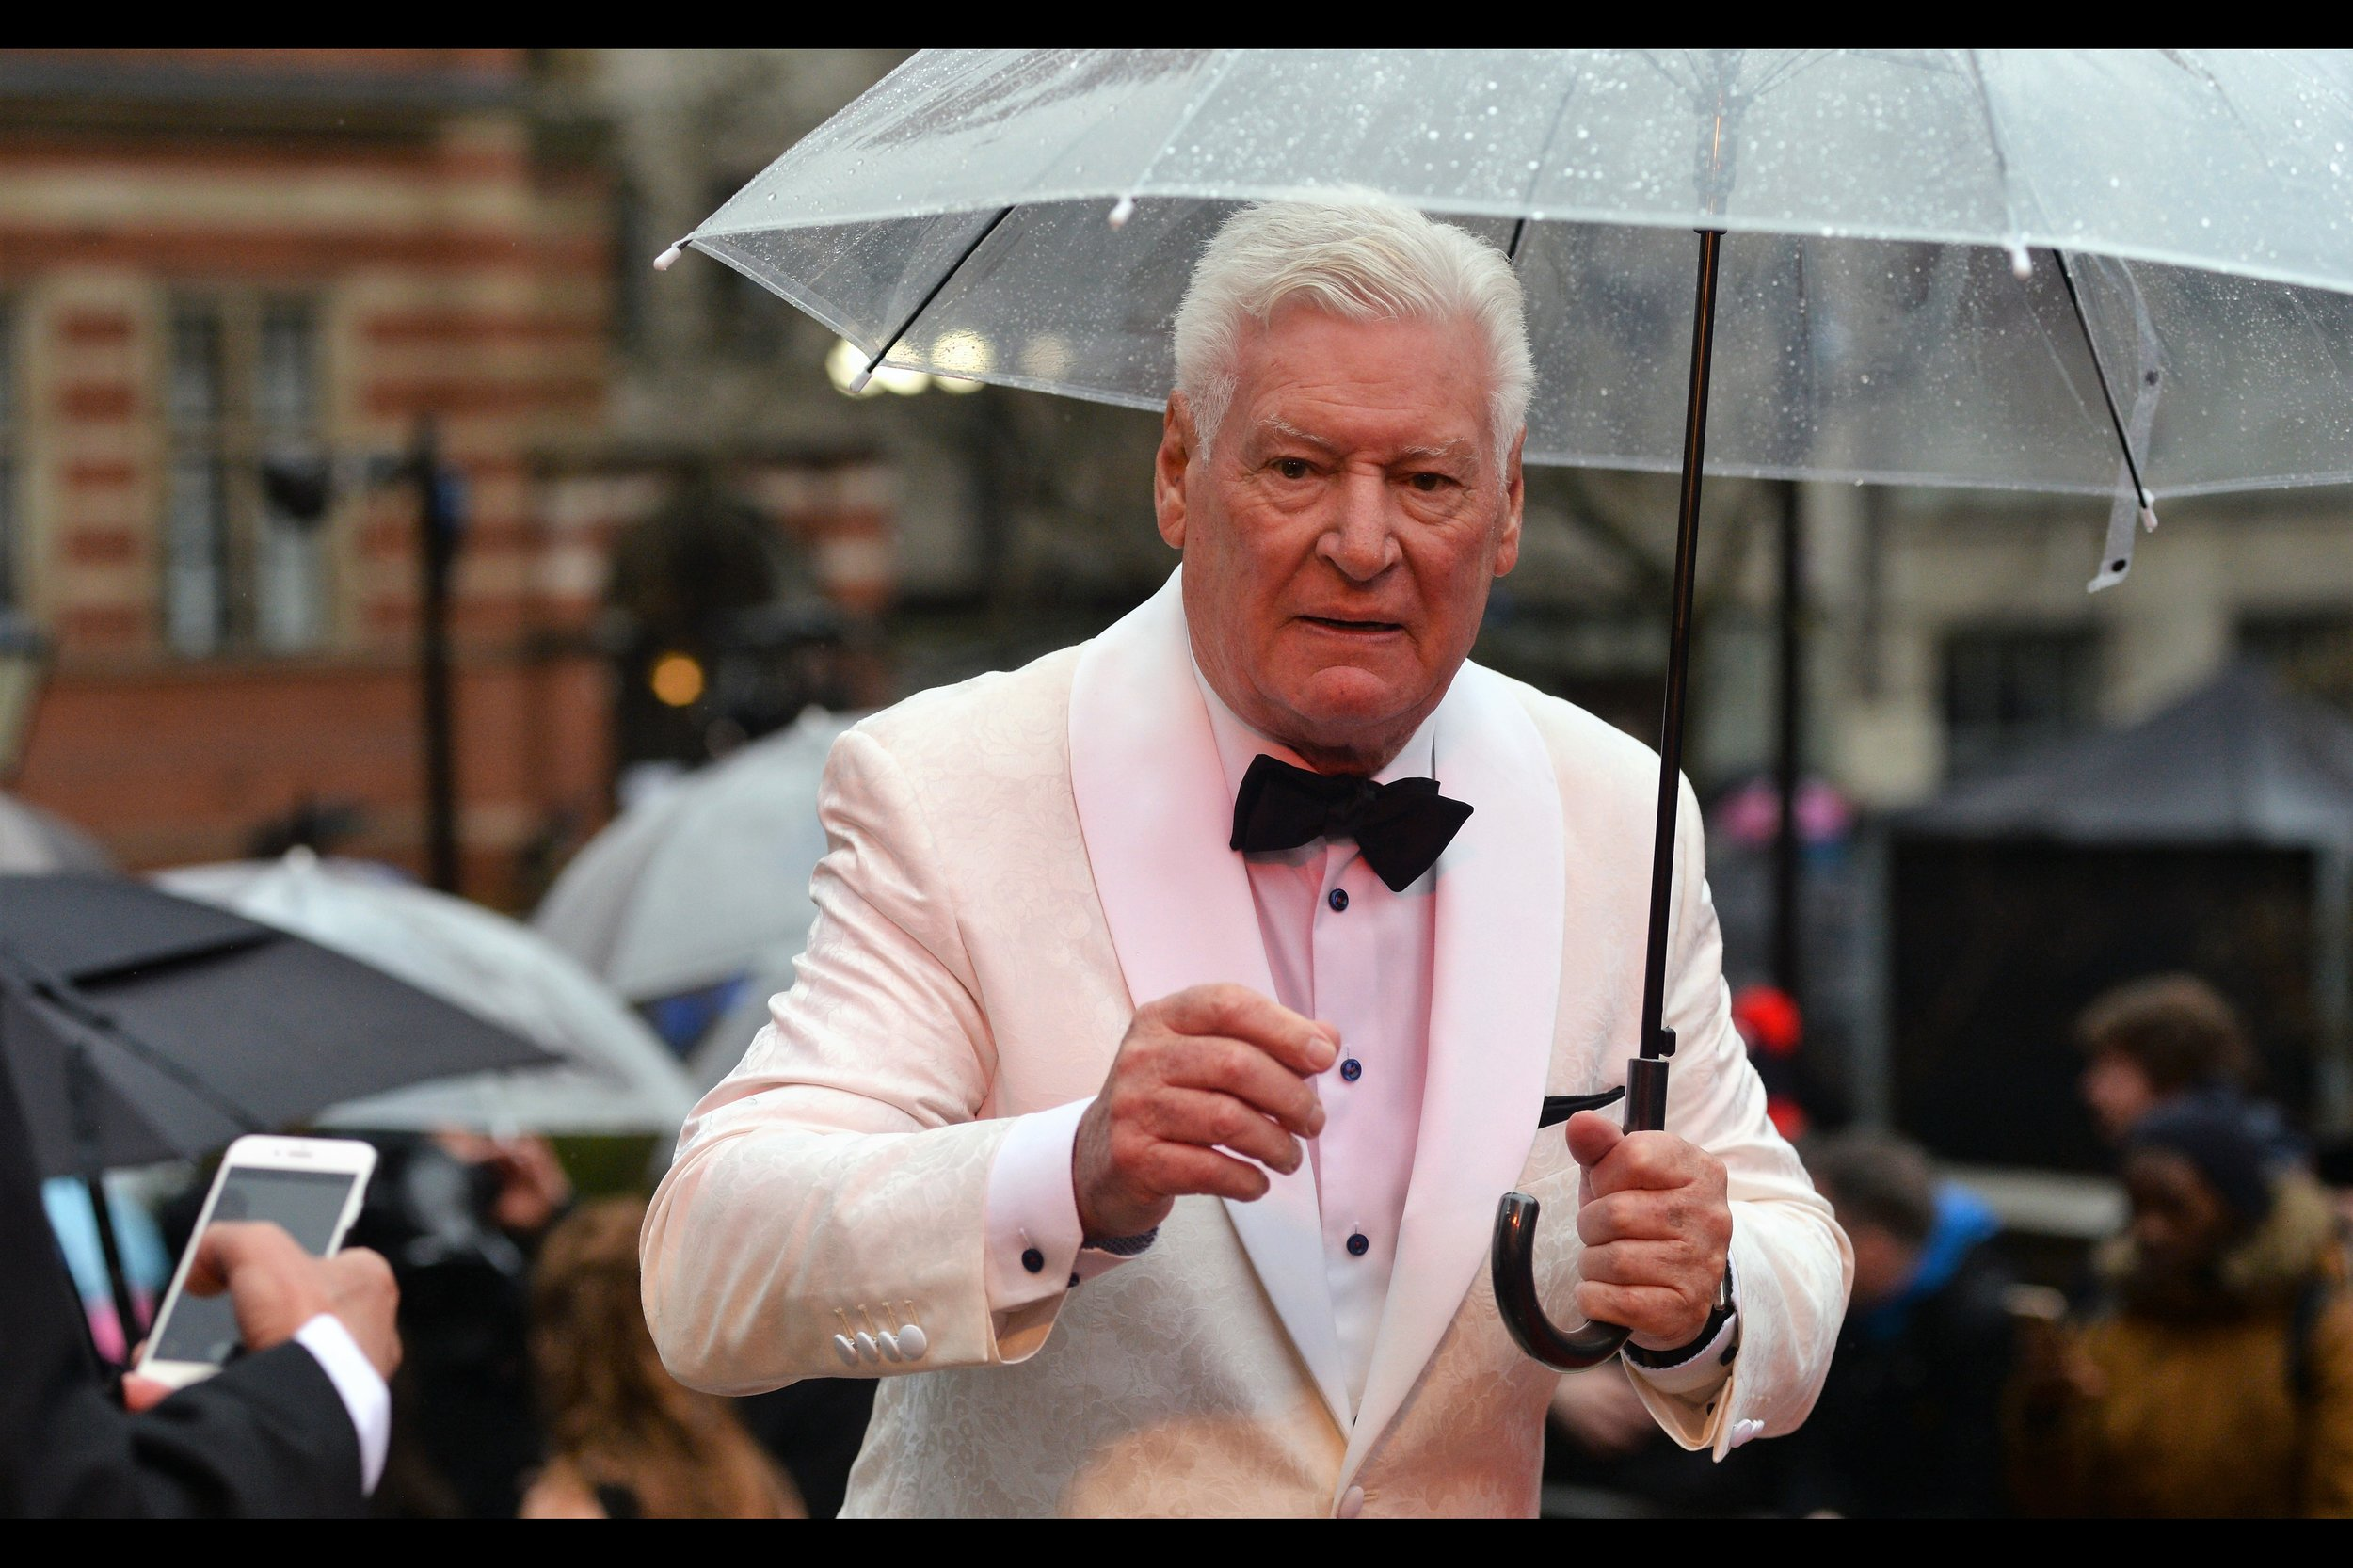 I'm given to understand that this gentleman used to host some kind of game show in the 1990s? Okay.... I'll post his photo. But only because he's wearing a white suit jacket.